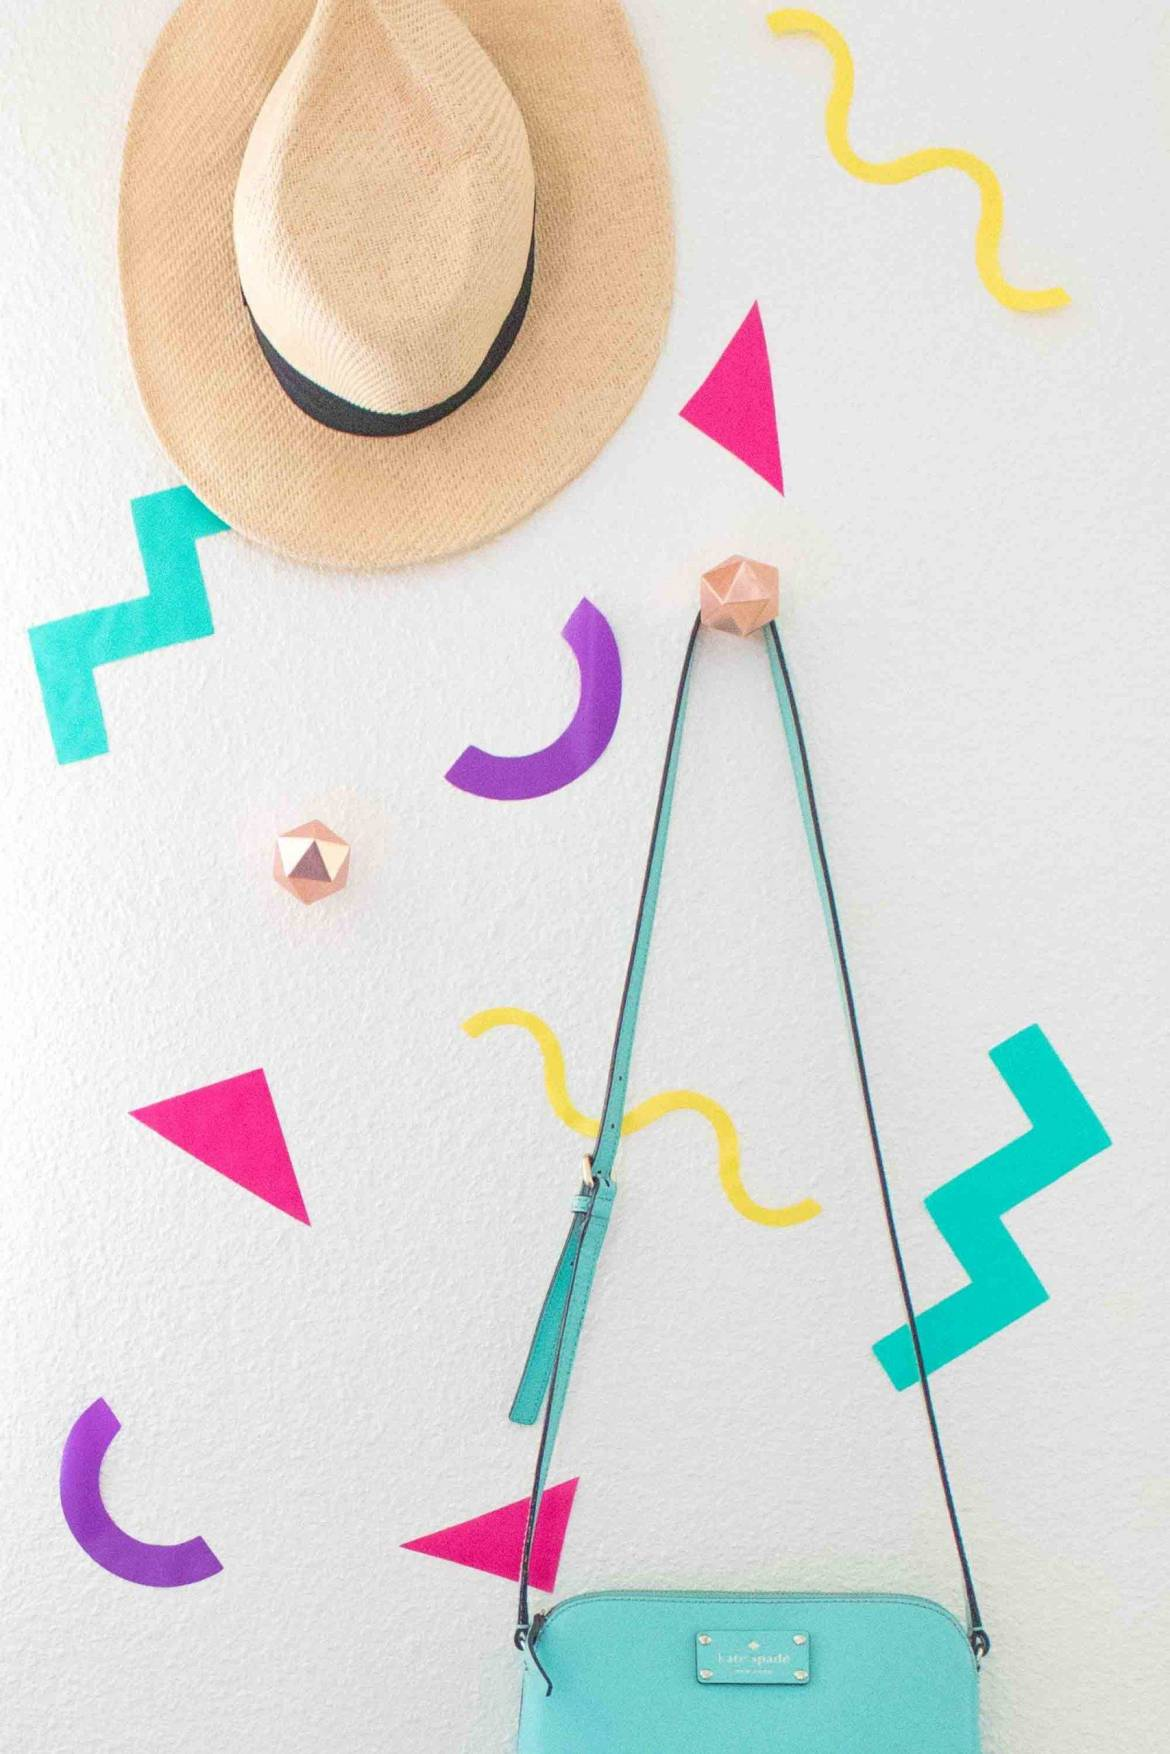 Temporary vinyl wall decals project by Holly Wade, via Curbly